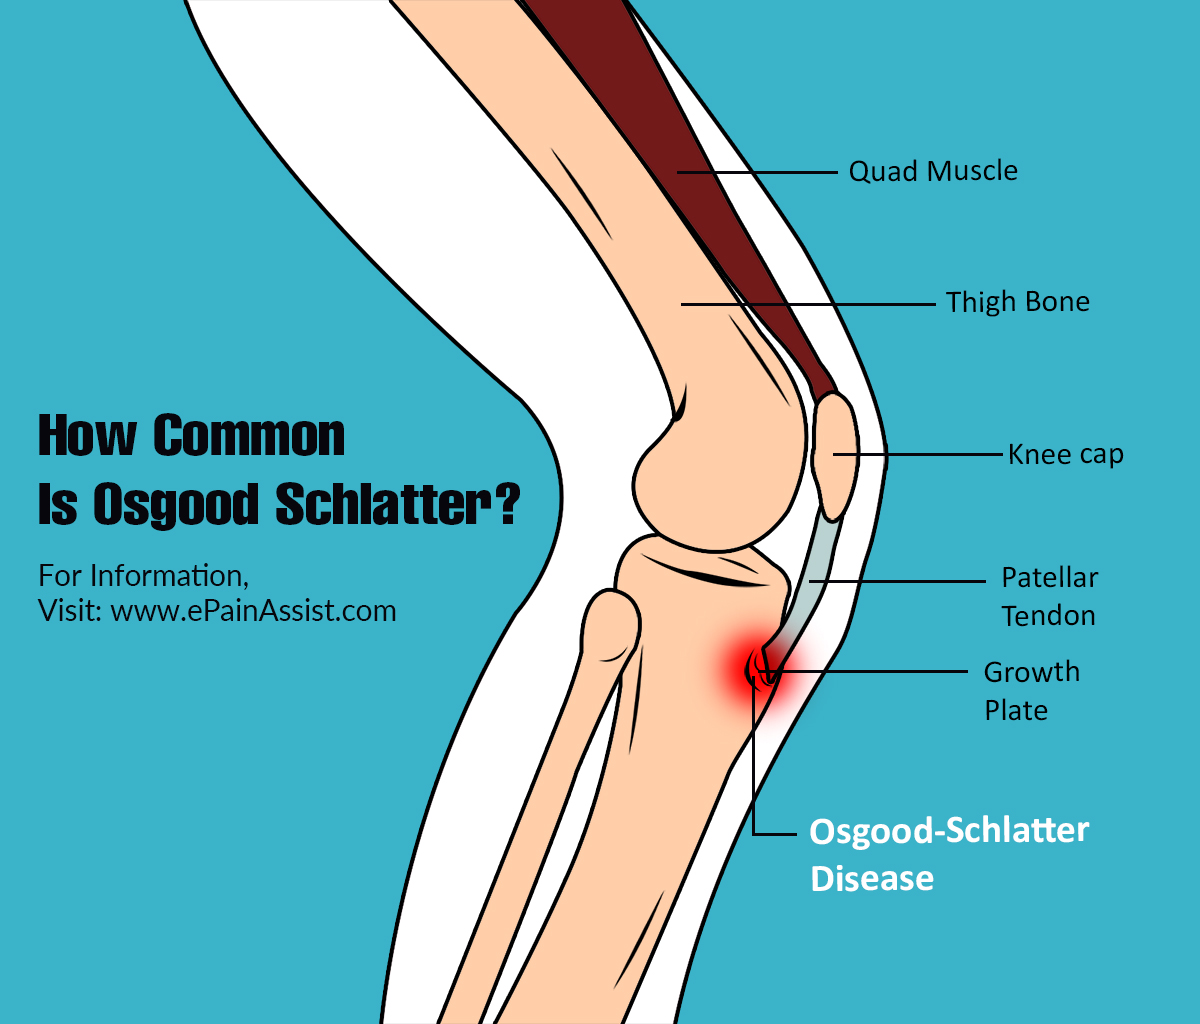 How Common Is Osgood Schlatter Or Is It A Rare Disease?